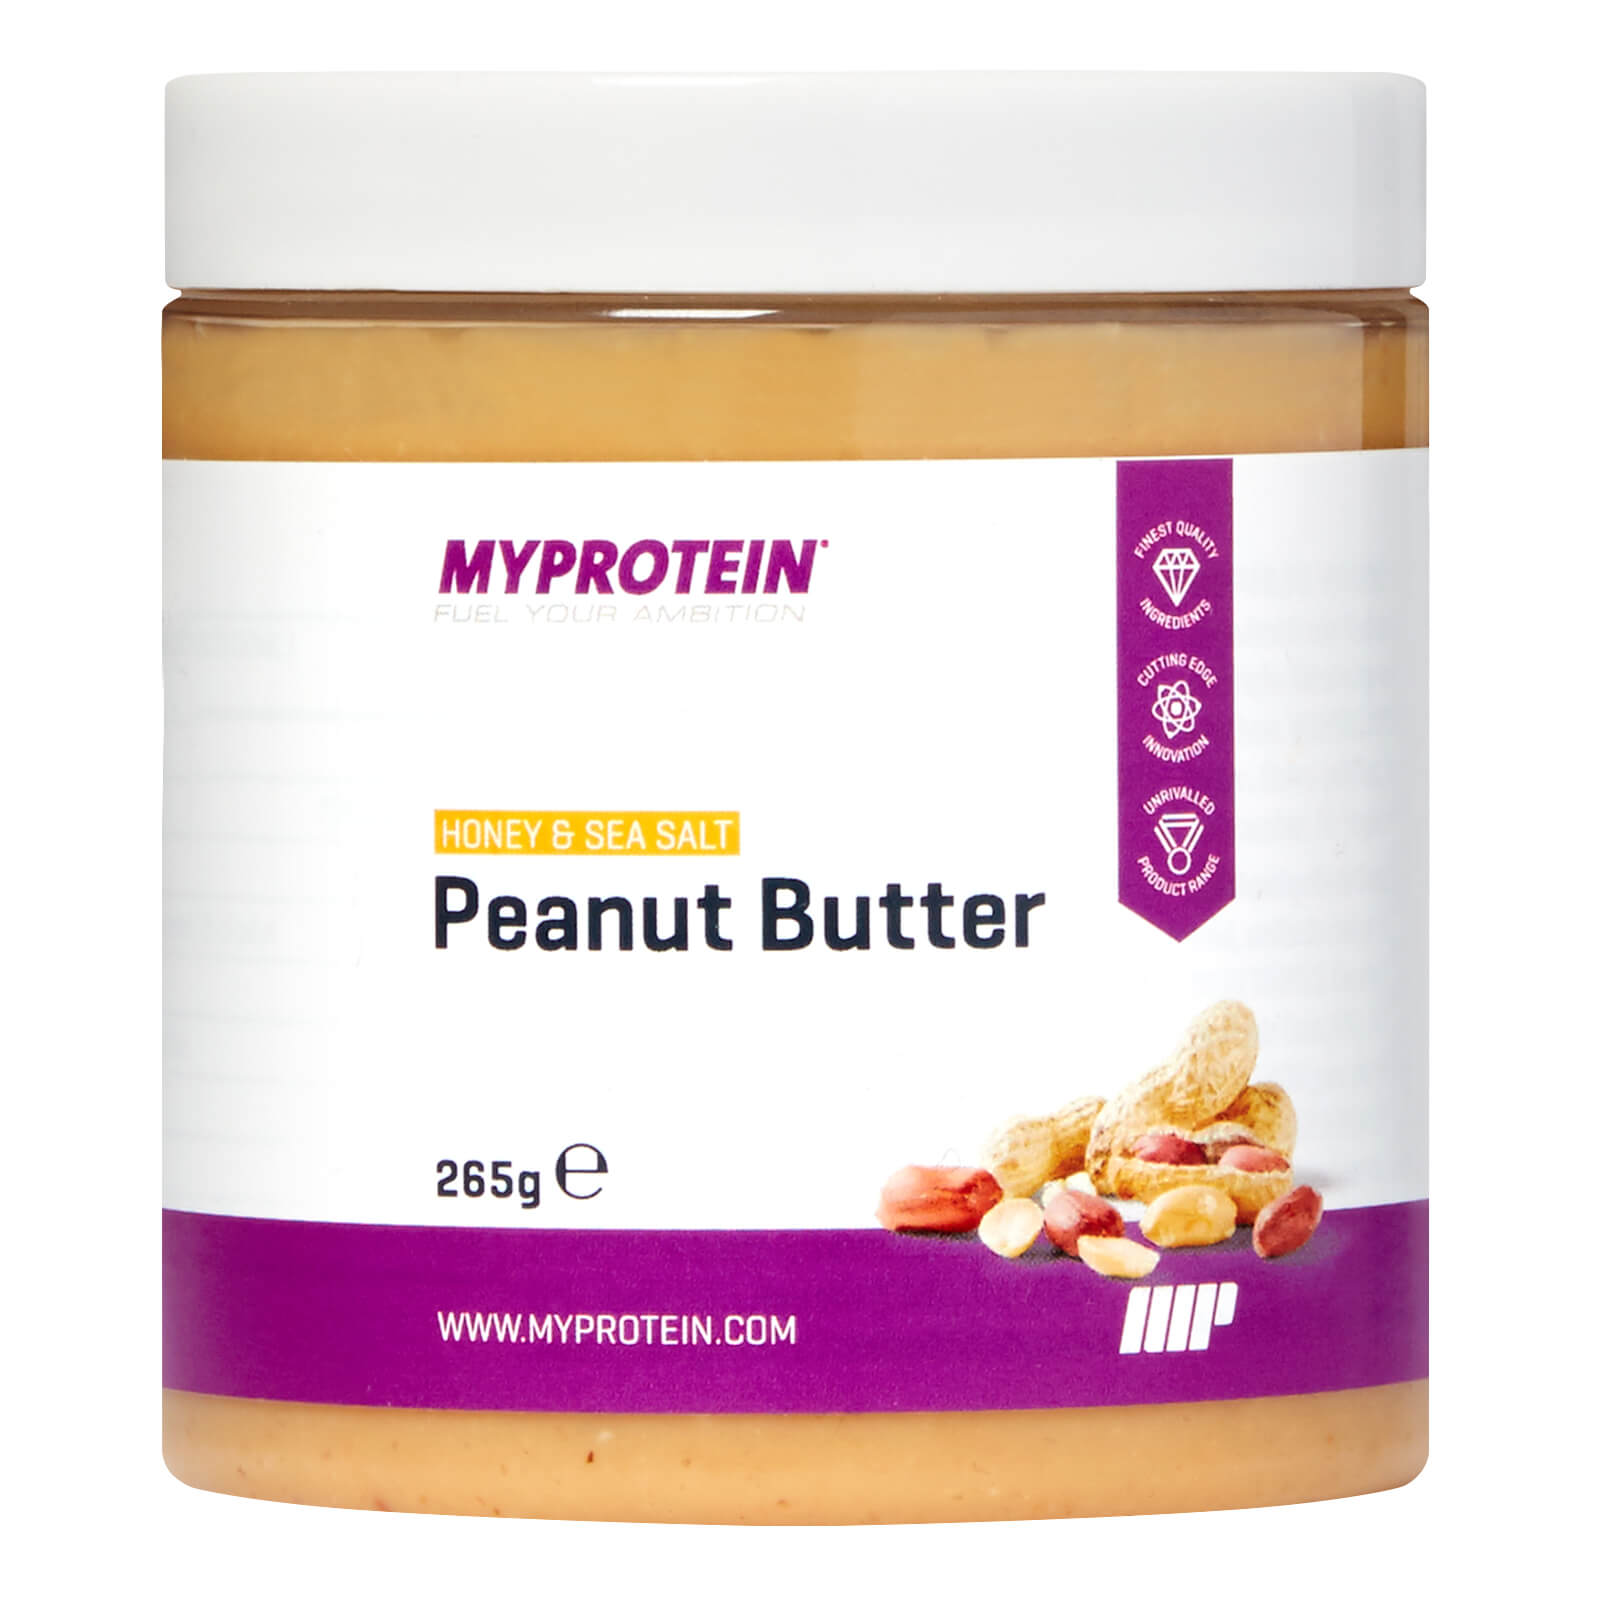 Active Women Nut Butter - Honey and Sea Salt, 265g